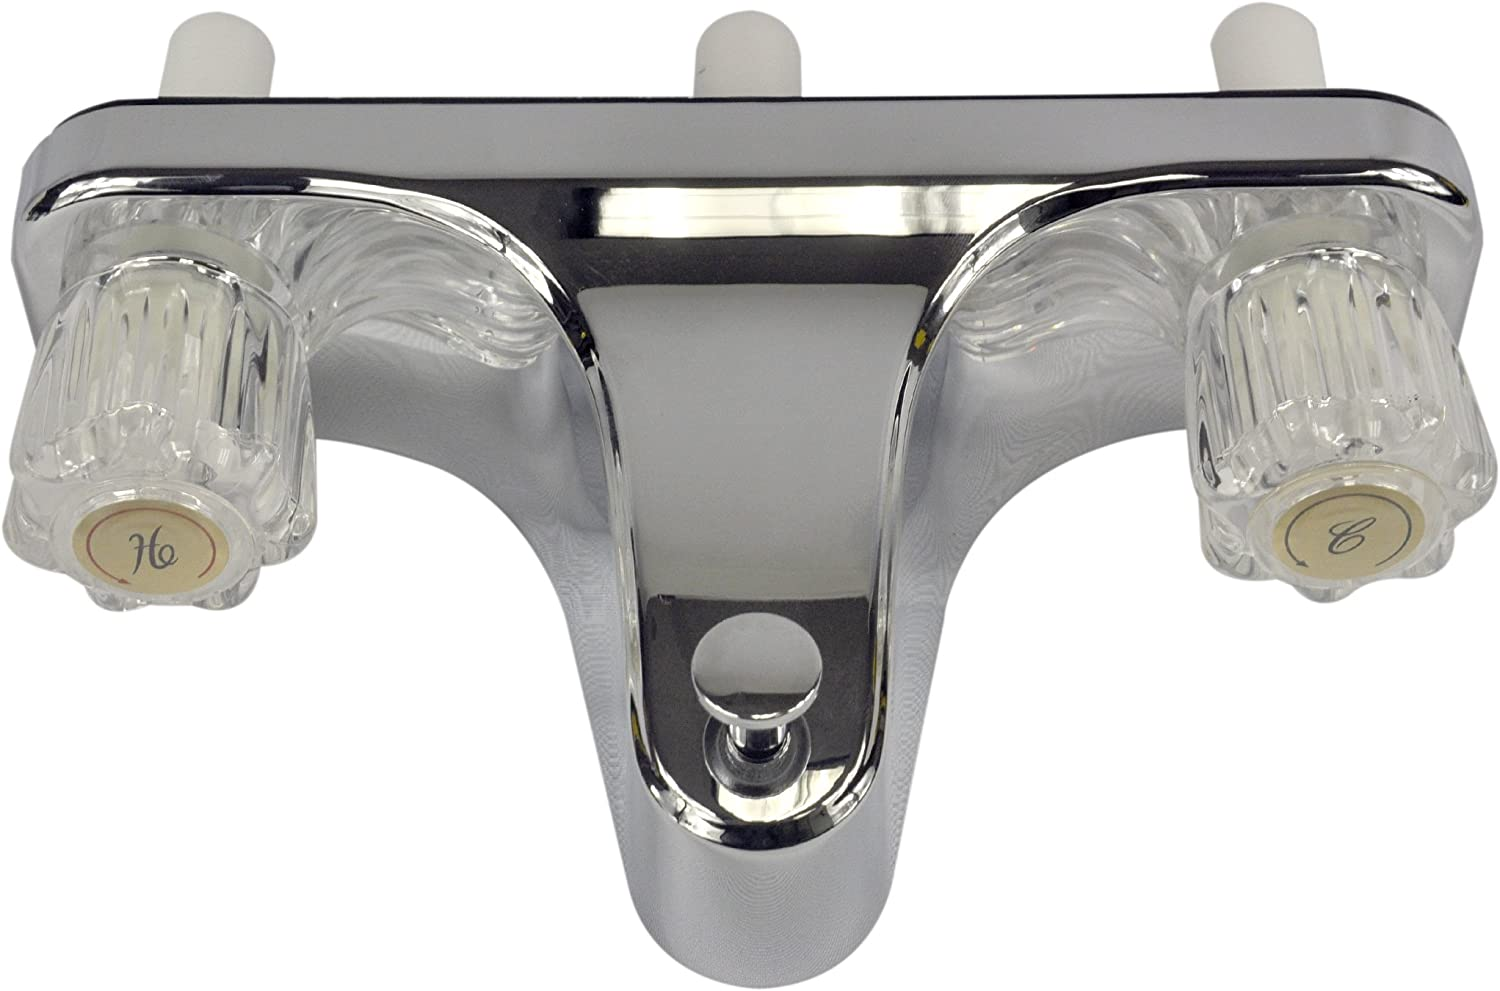 DANCO Mobile Home RV Tub Shower Center-Set Faucet, 8 inch, 2-Handle, Chrome with Clear Acrylic Handles (33156X)